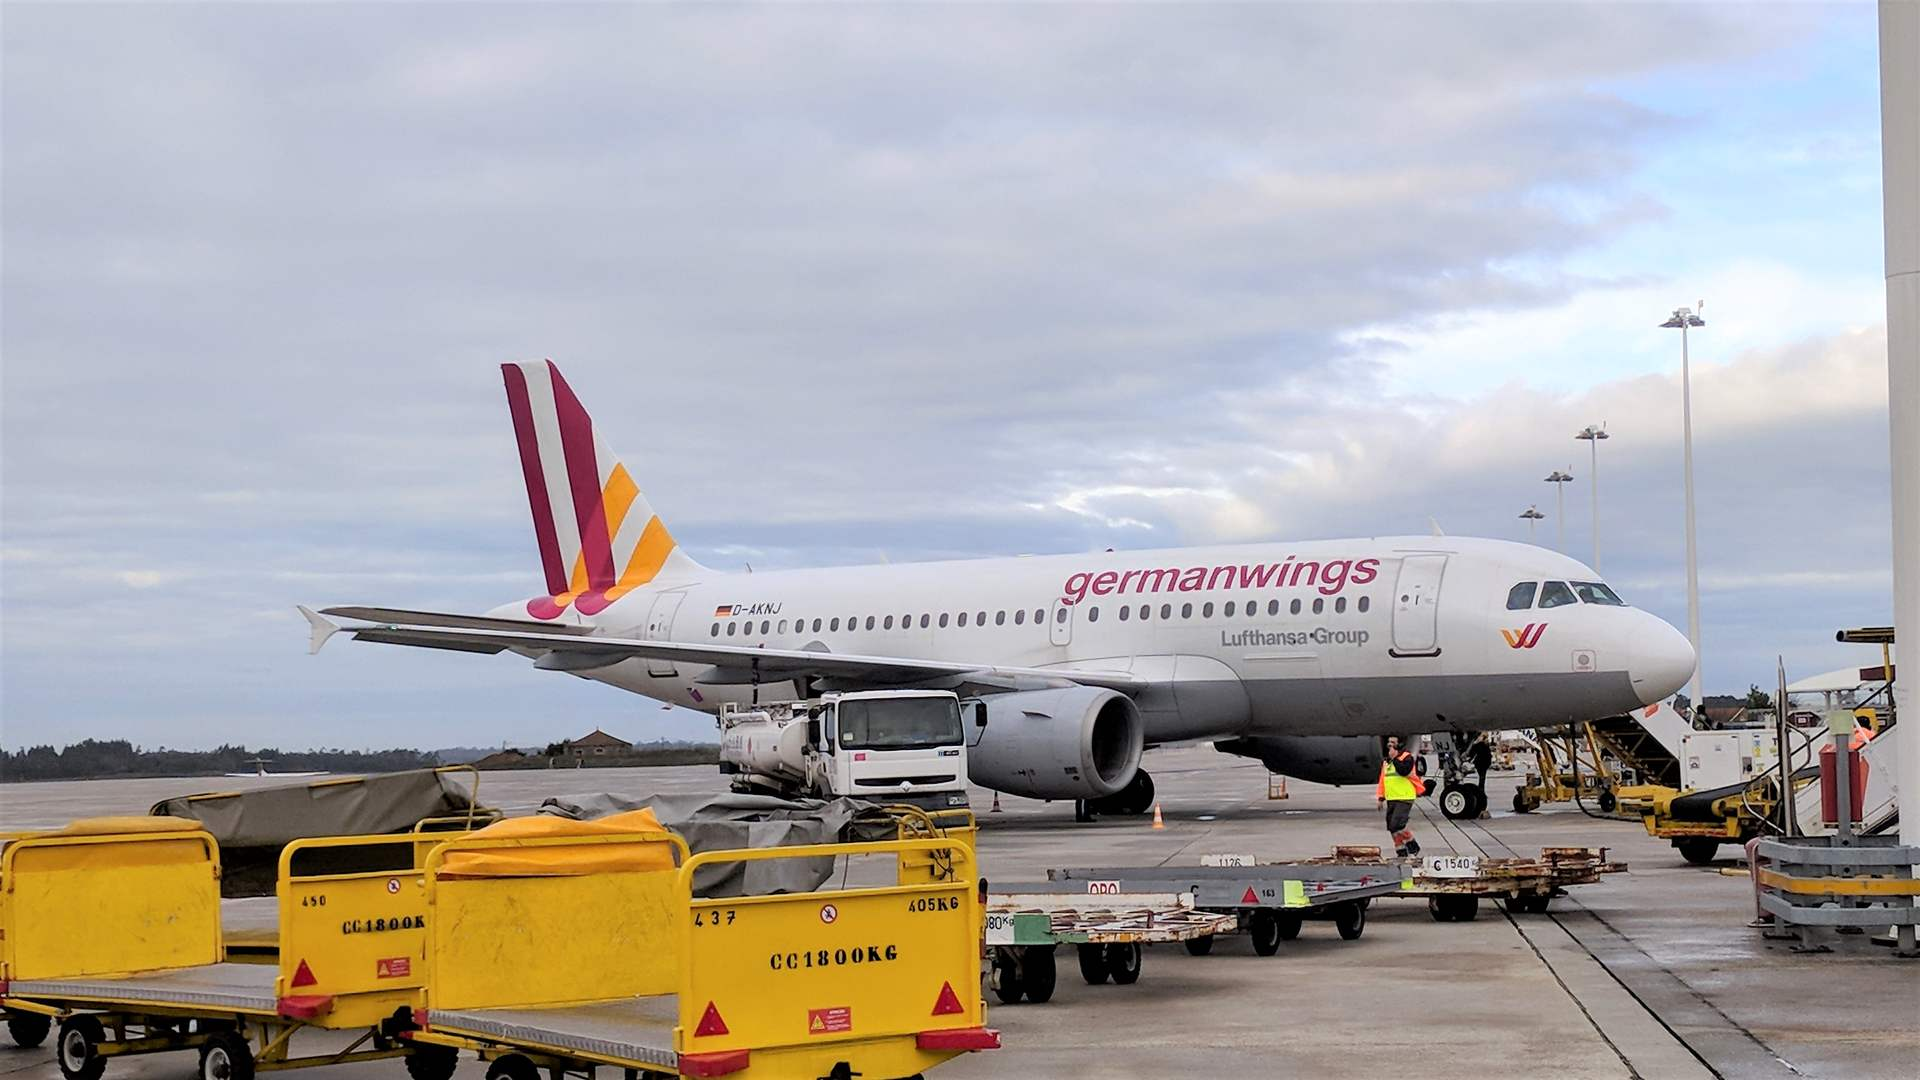 Eurowings Germanwings Airbus A319 Porto